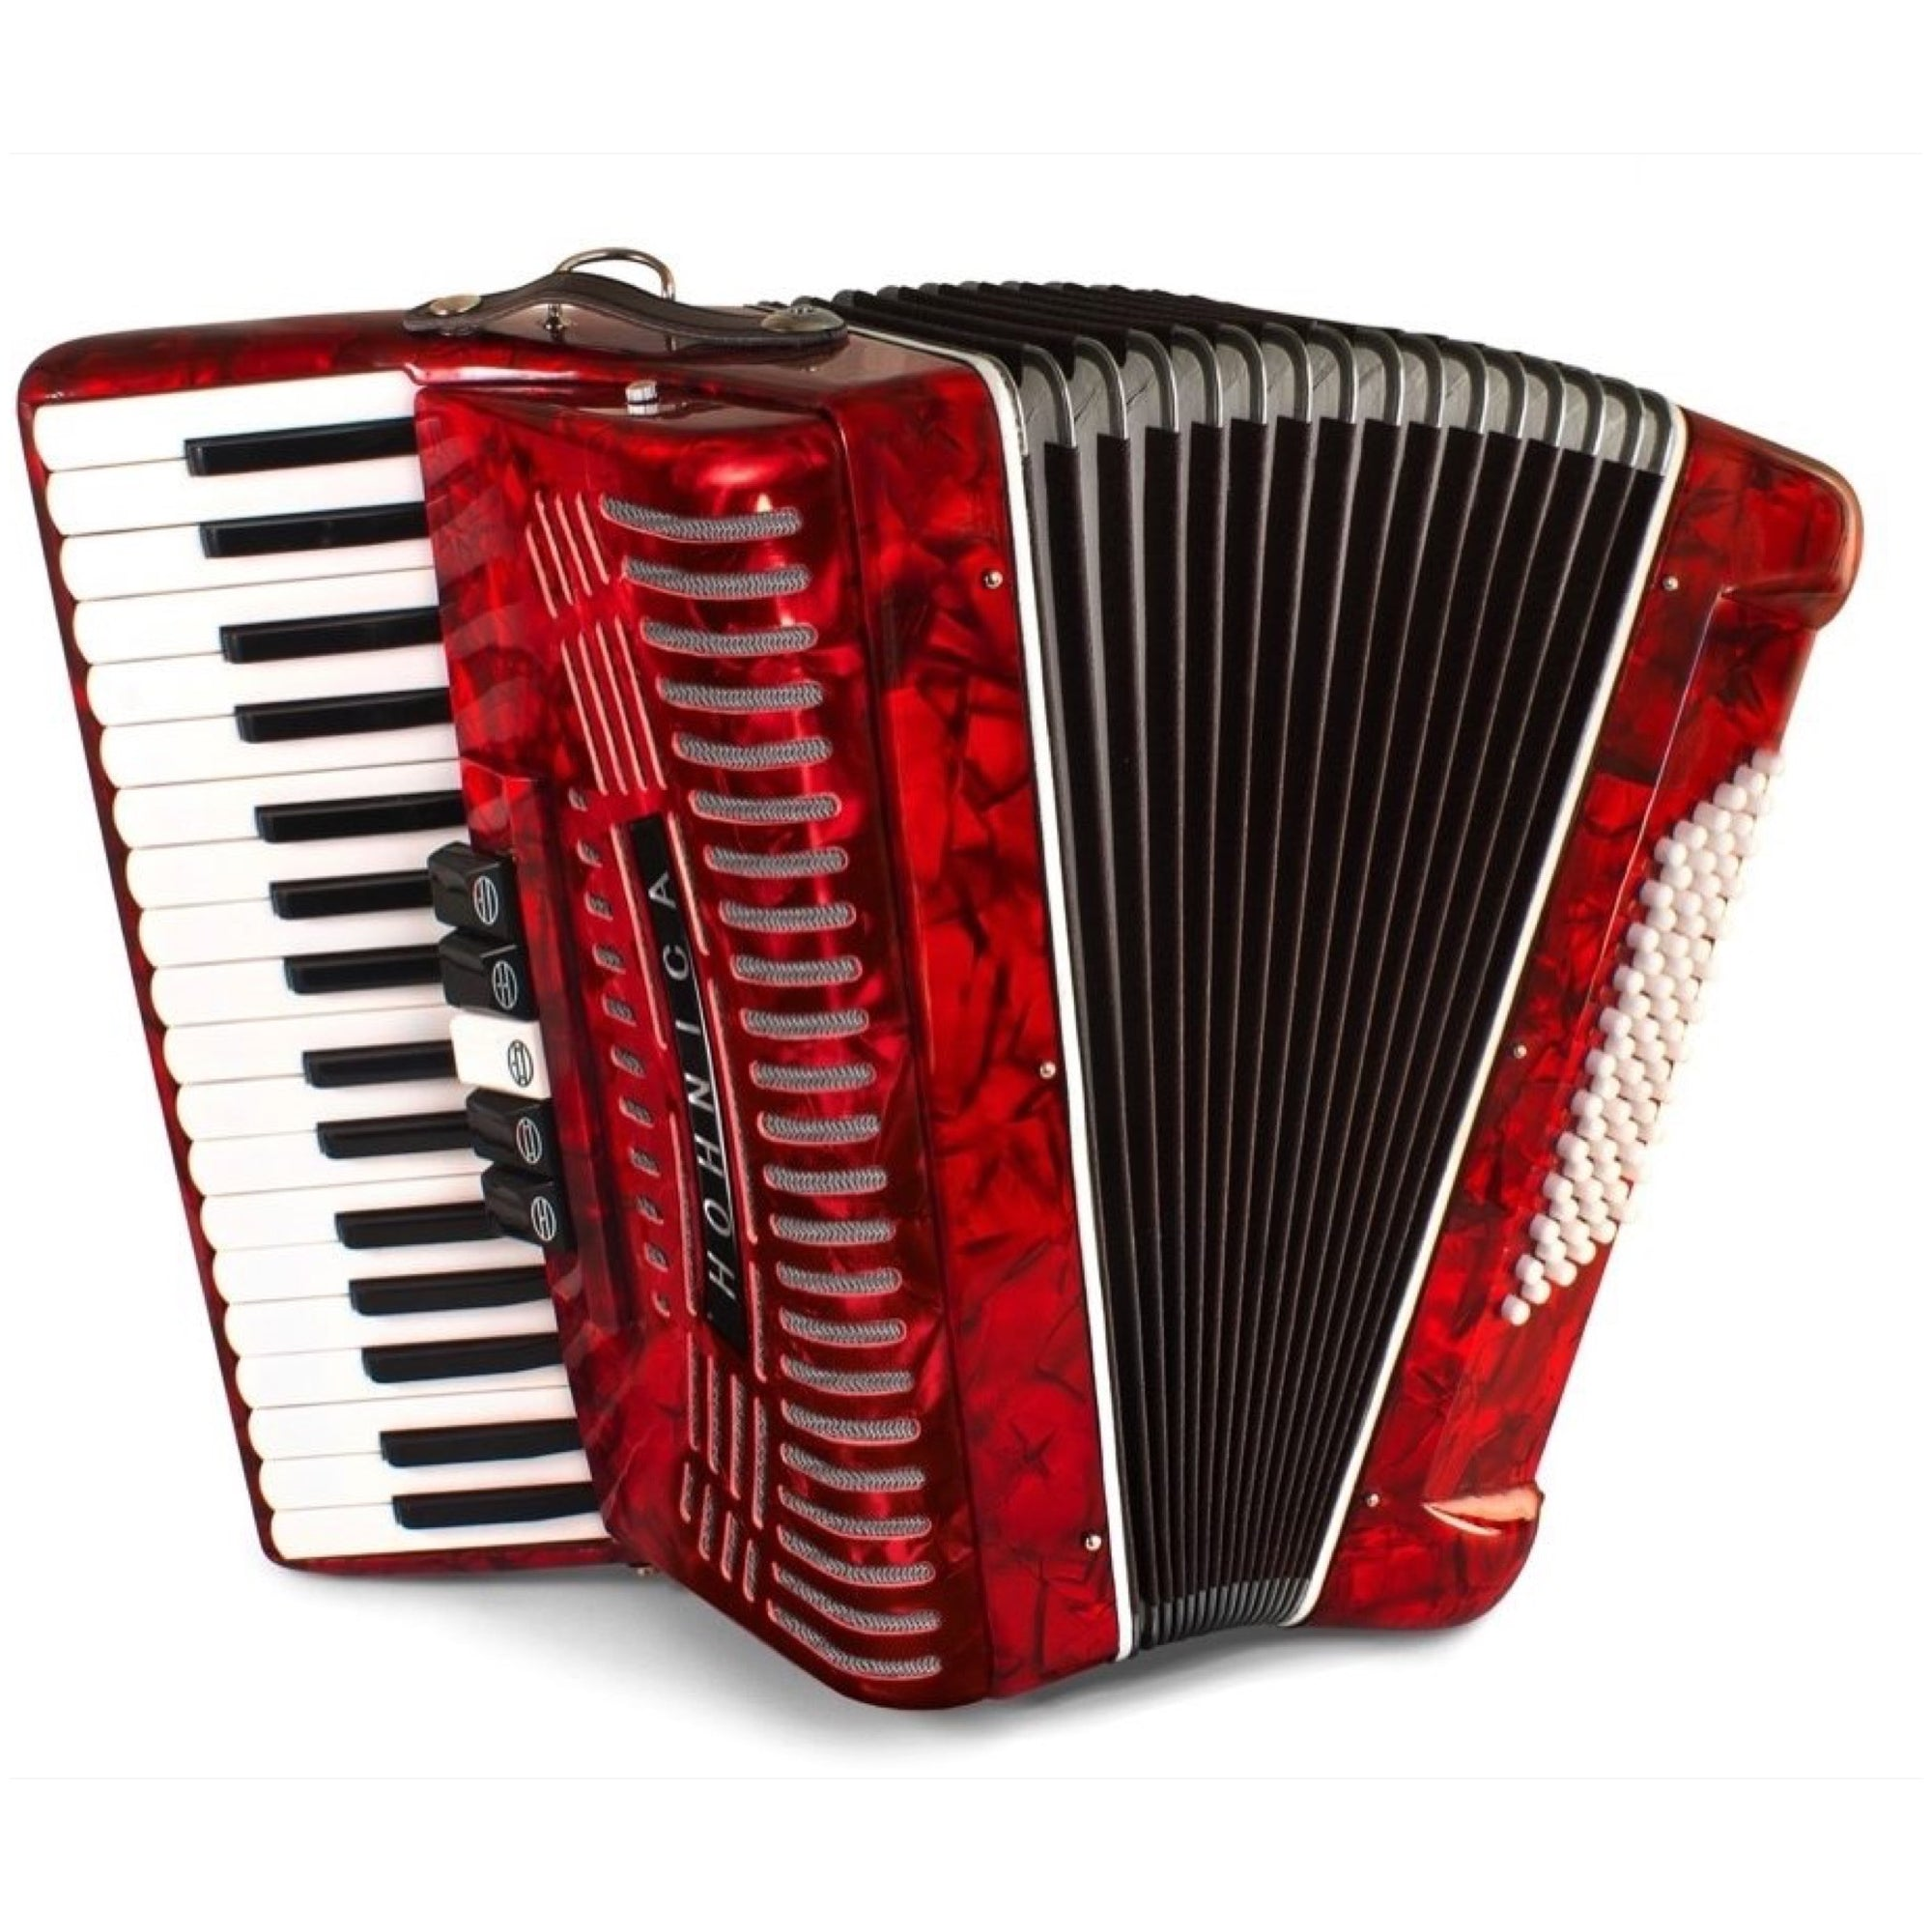 Hohner 1305-RED 72 Bass Piano Accordion, Pearl Red